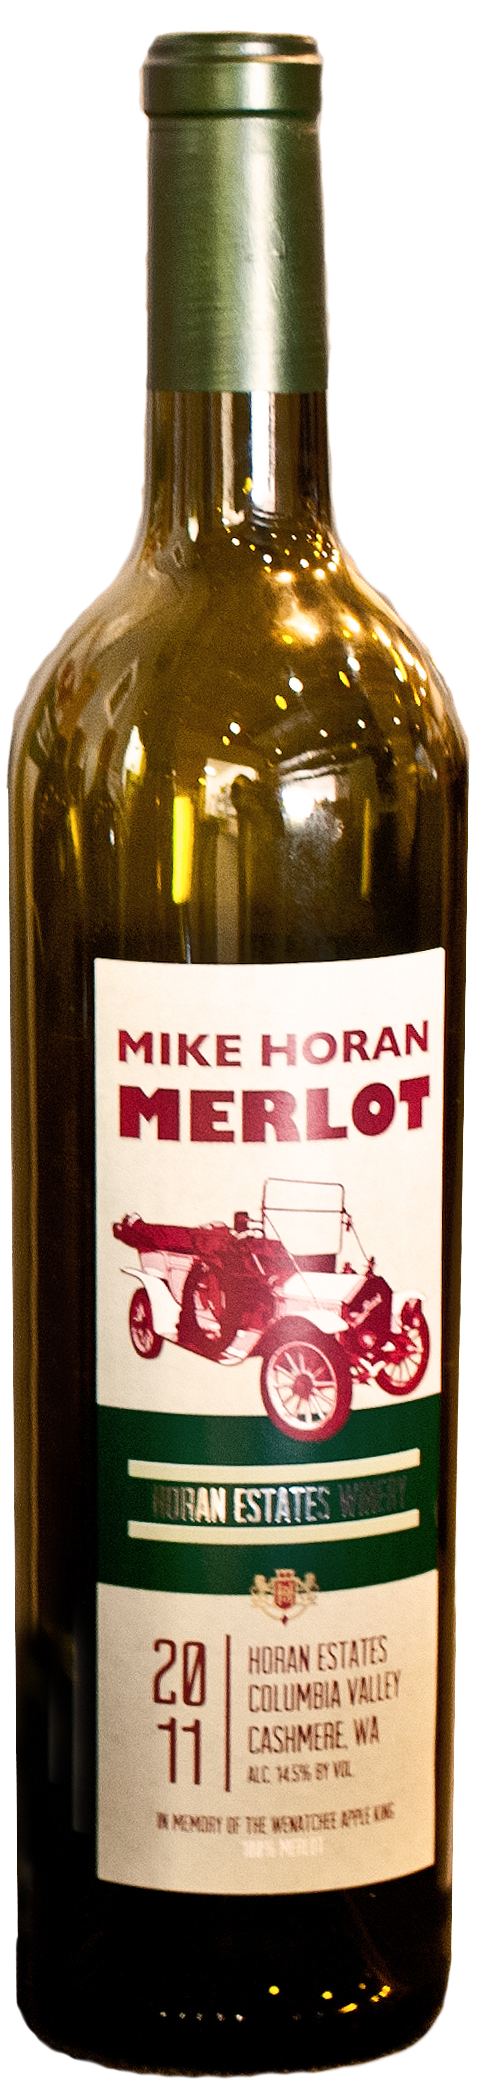 Mike-Horan-Merlot.png